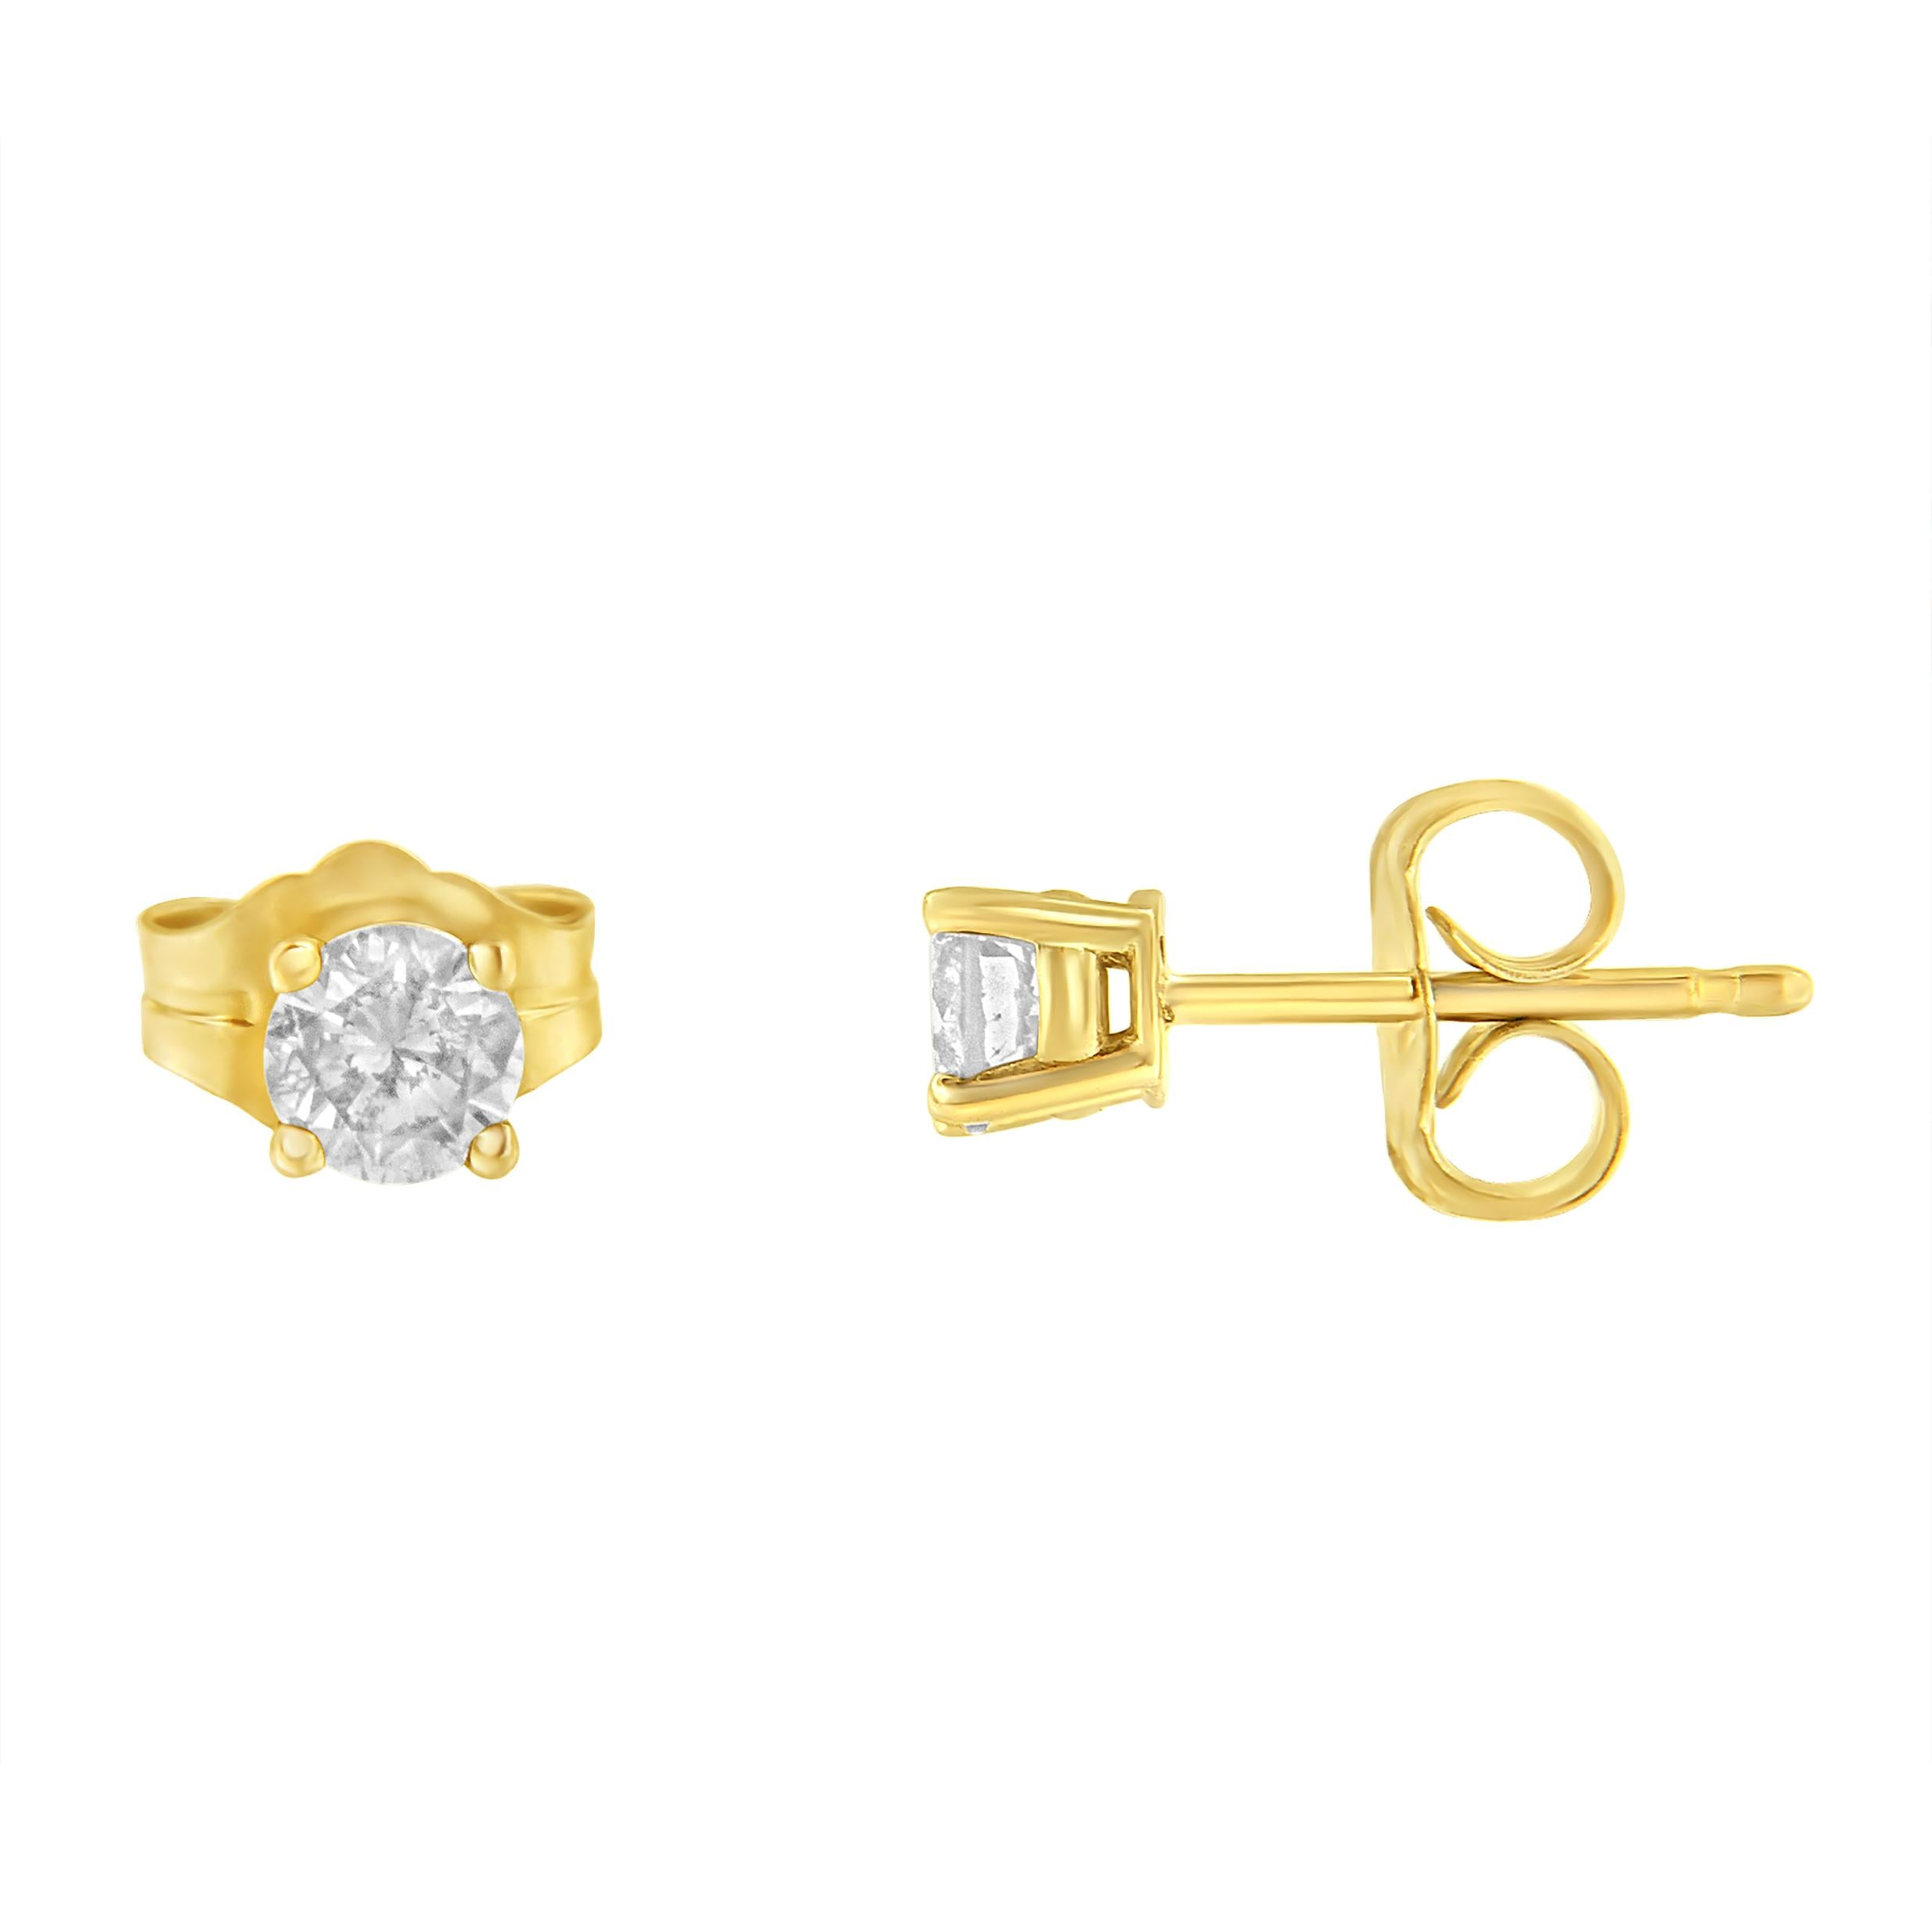 Yellow Gold-Plated Sterling Silver 1/2 ct TDW Diamond Stud Earrings (I-J,I3)